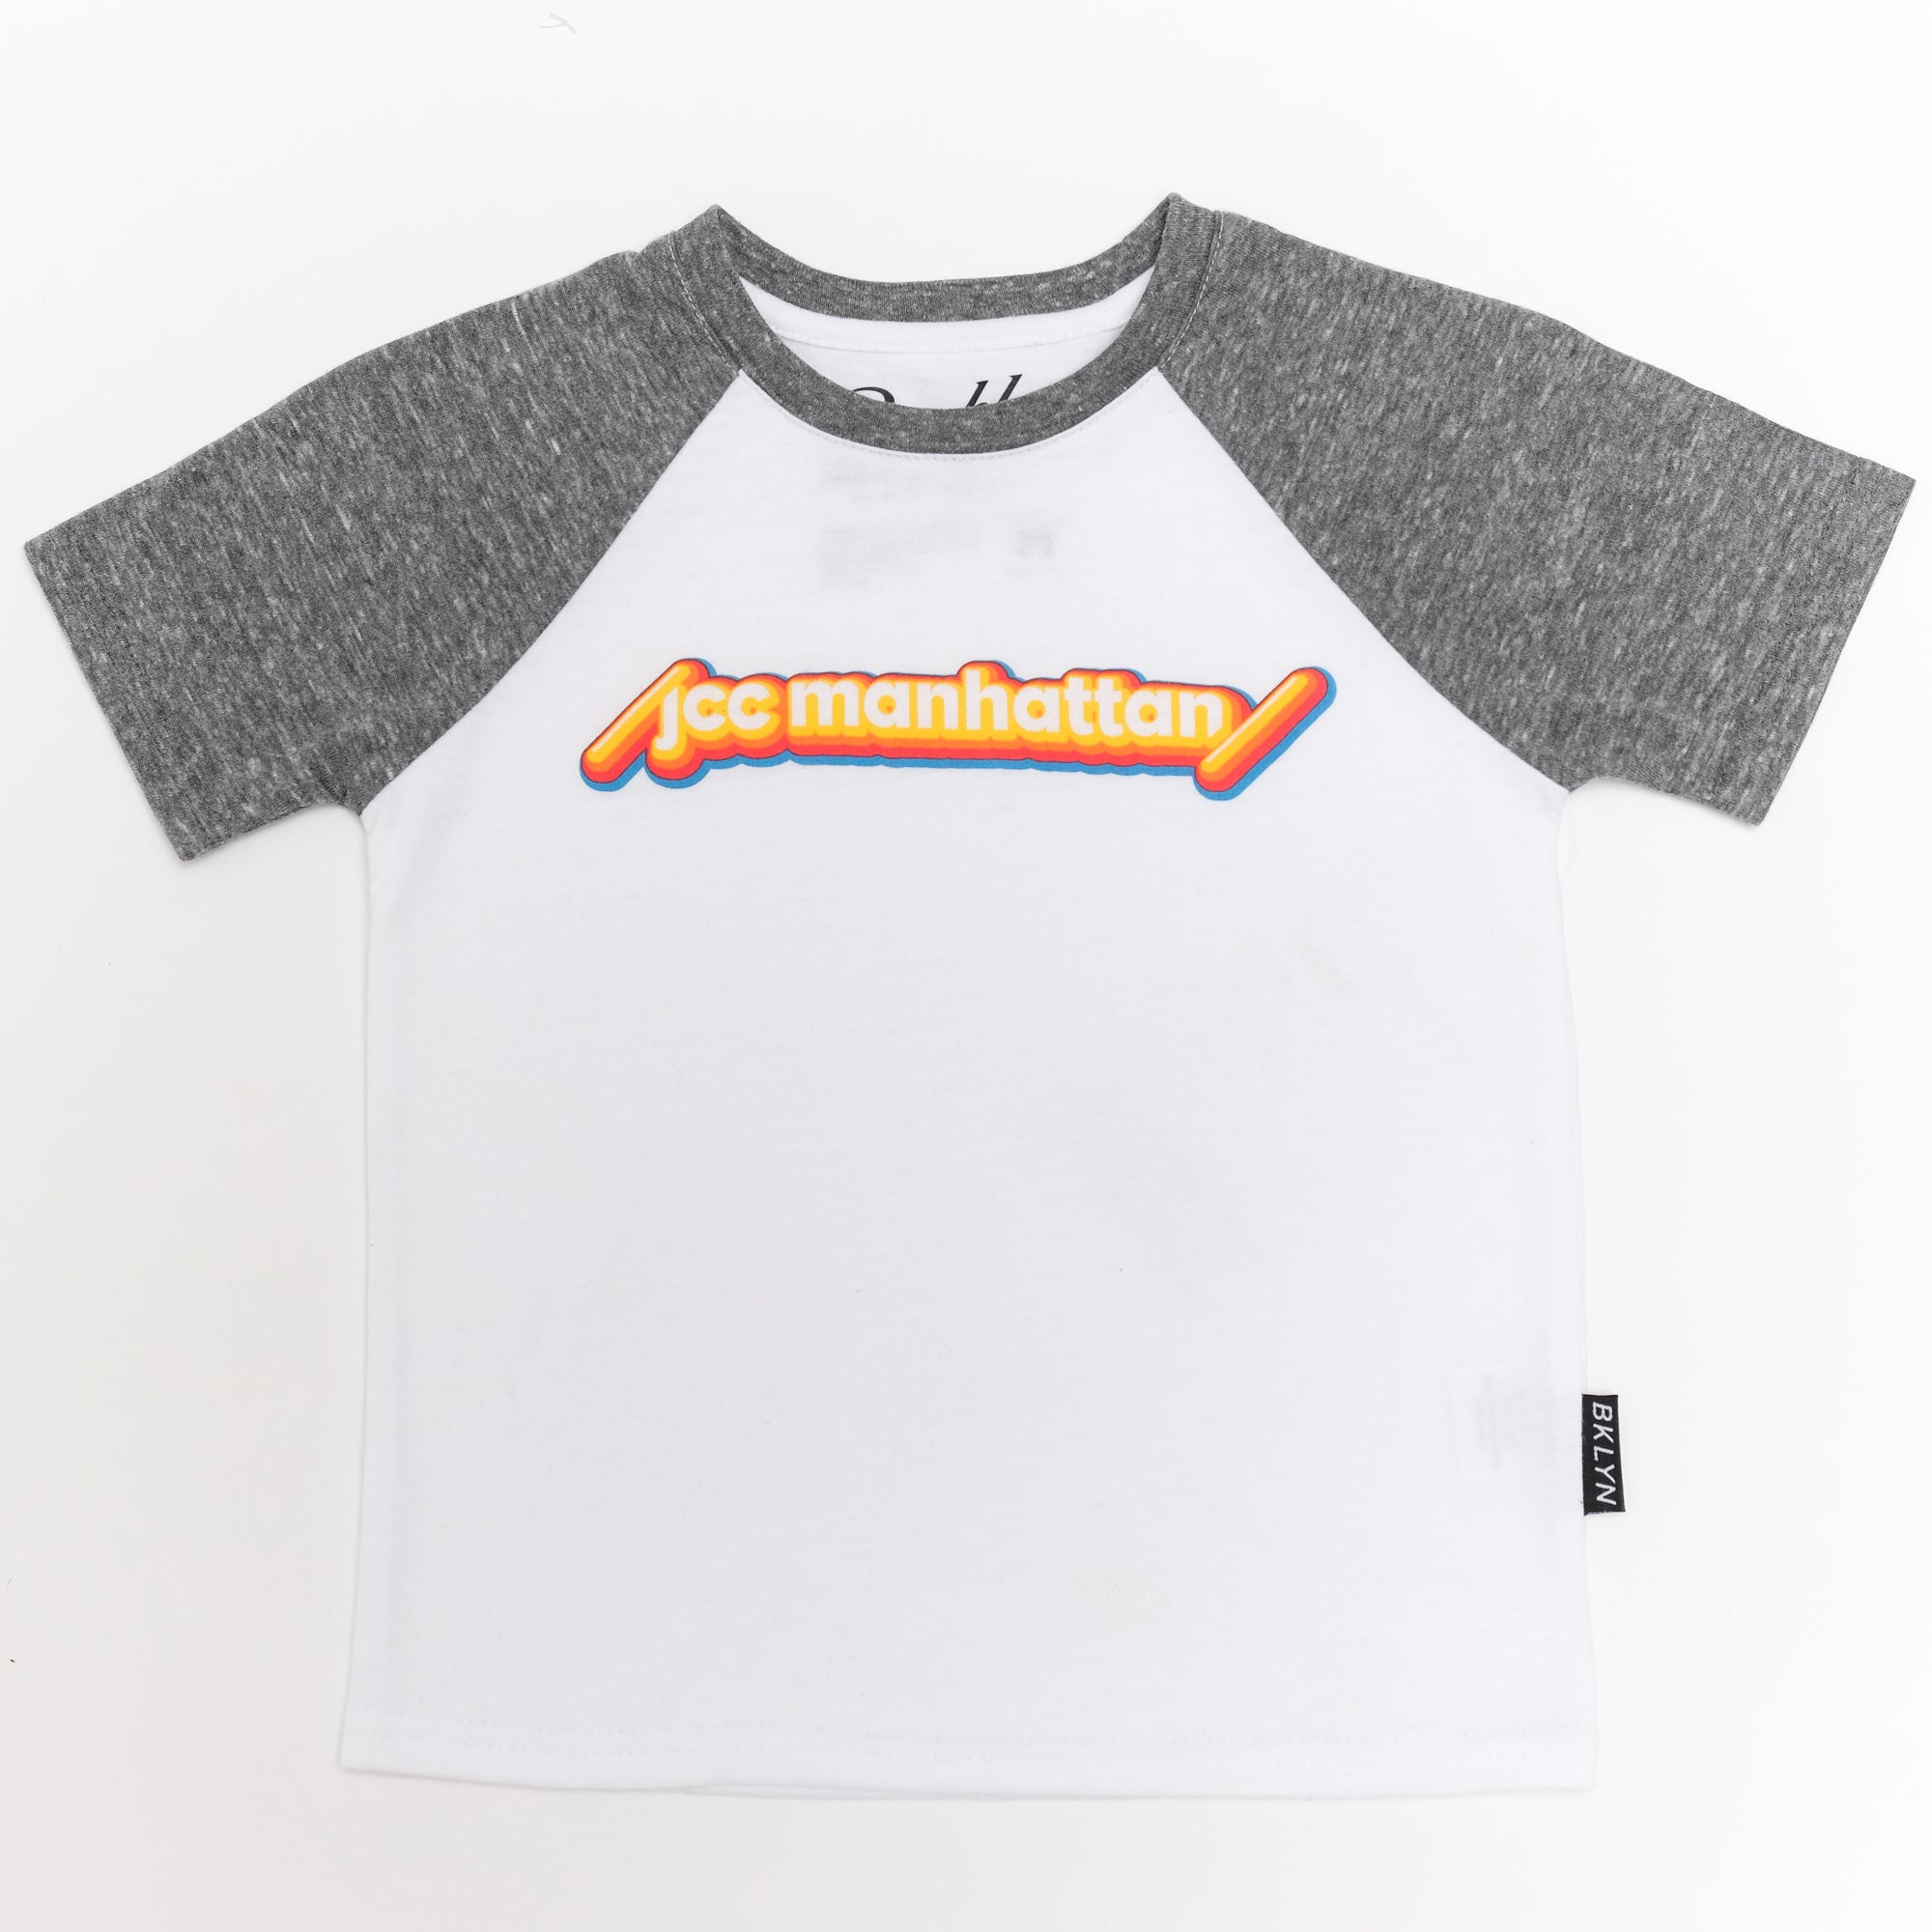 Short Sleeve Tee in White with Gray Sleeves